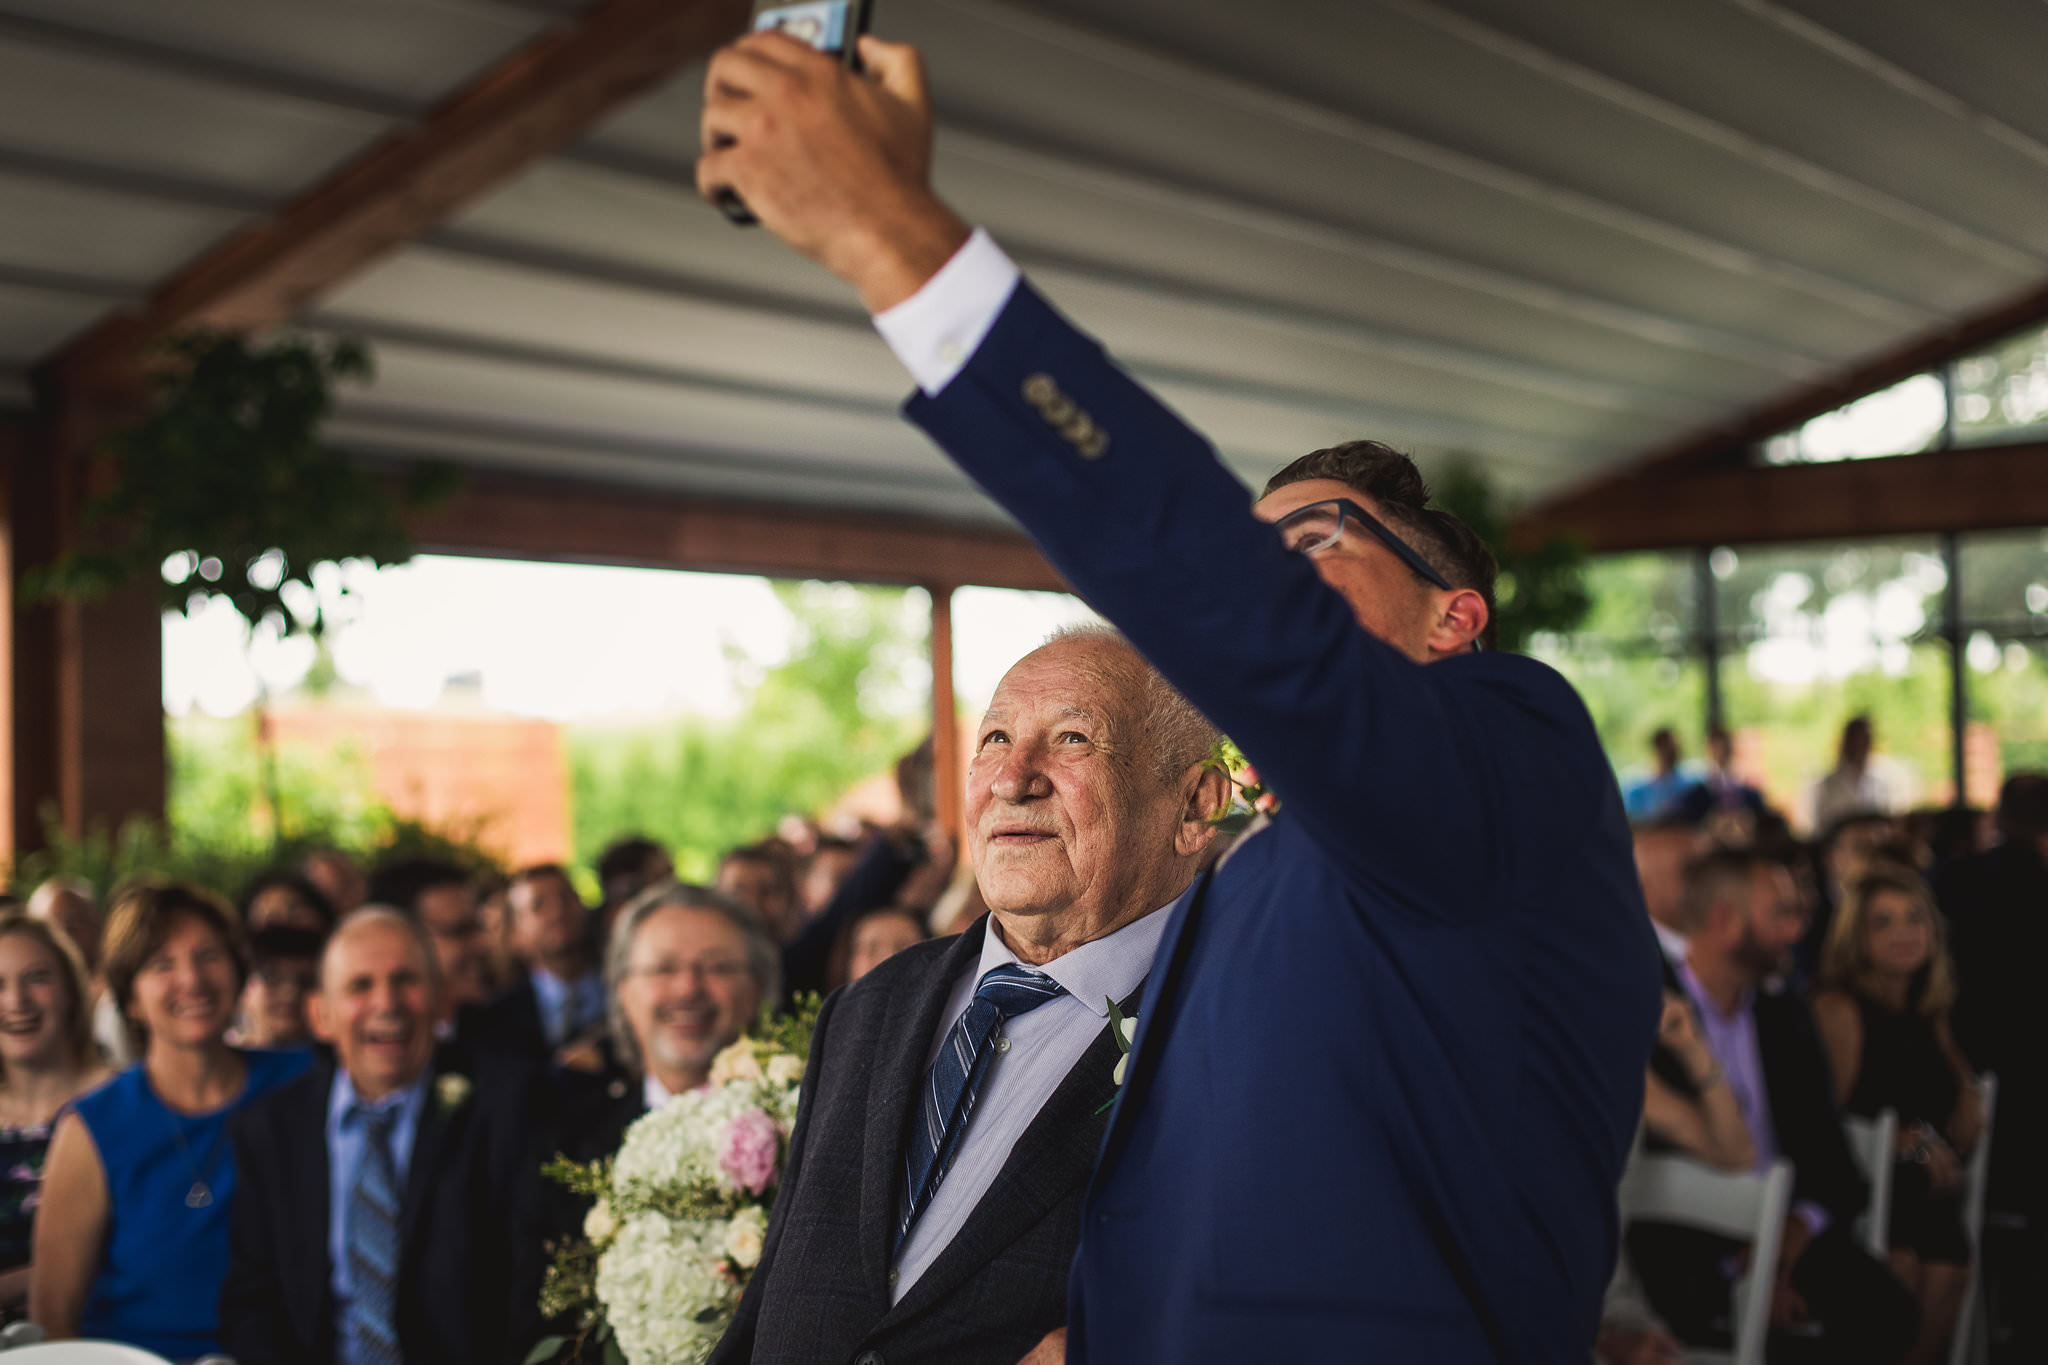 groomsman takes a selfie with grandpa while walking down the aisle